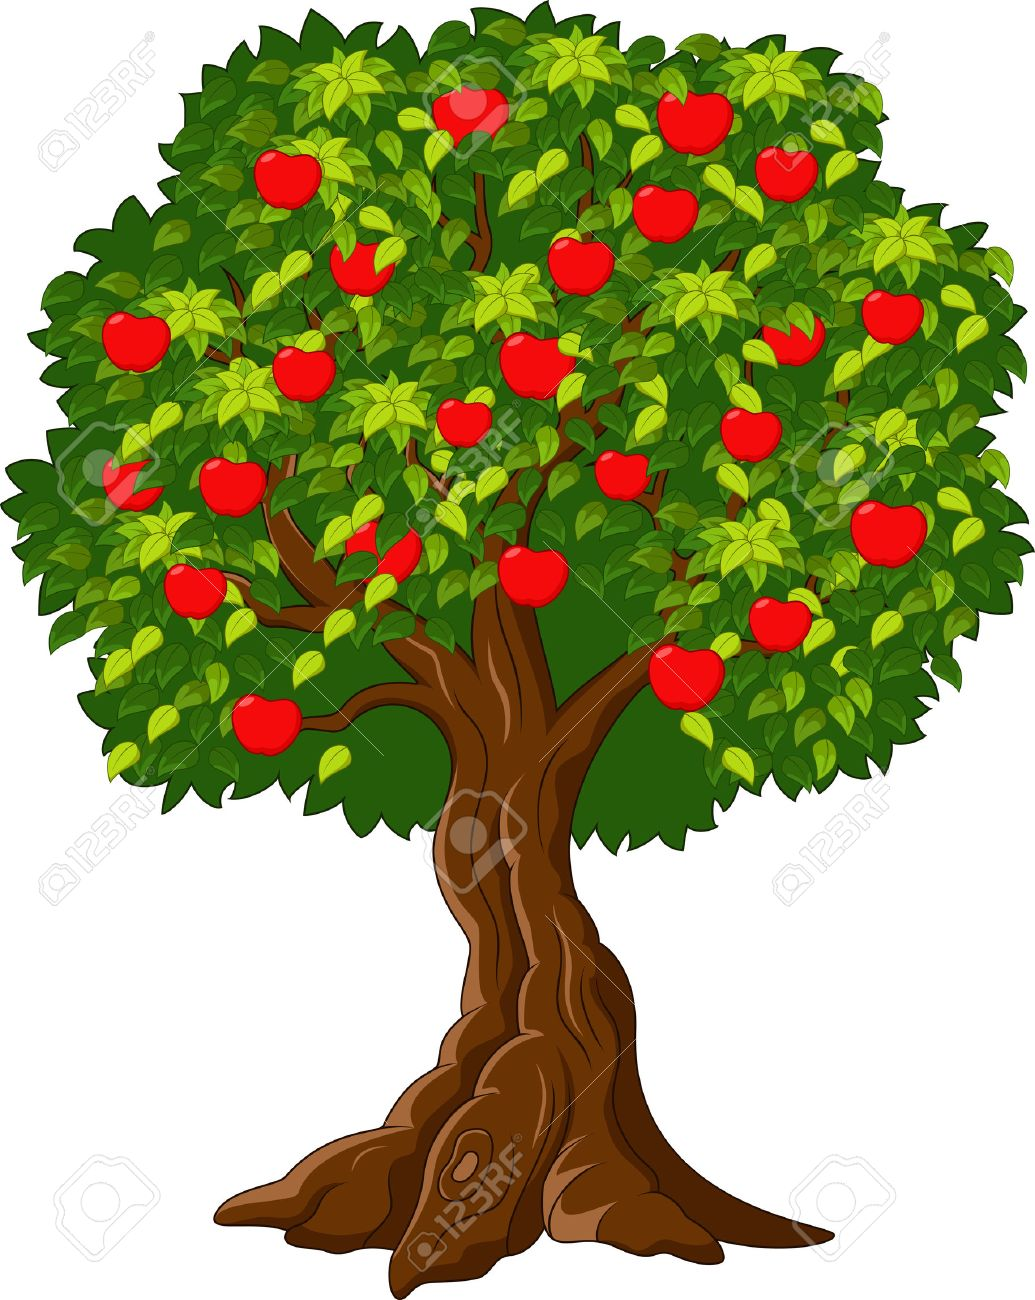 105 887 fruit tree cliparts stock vector and royalty free fruit rh 123rf com apple tree leaf clipart apple tree clipart png